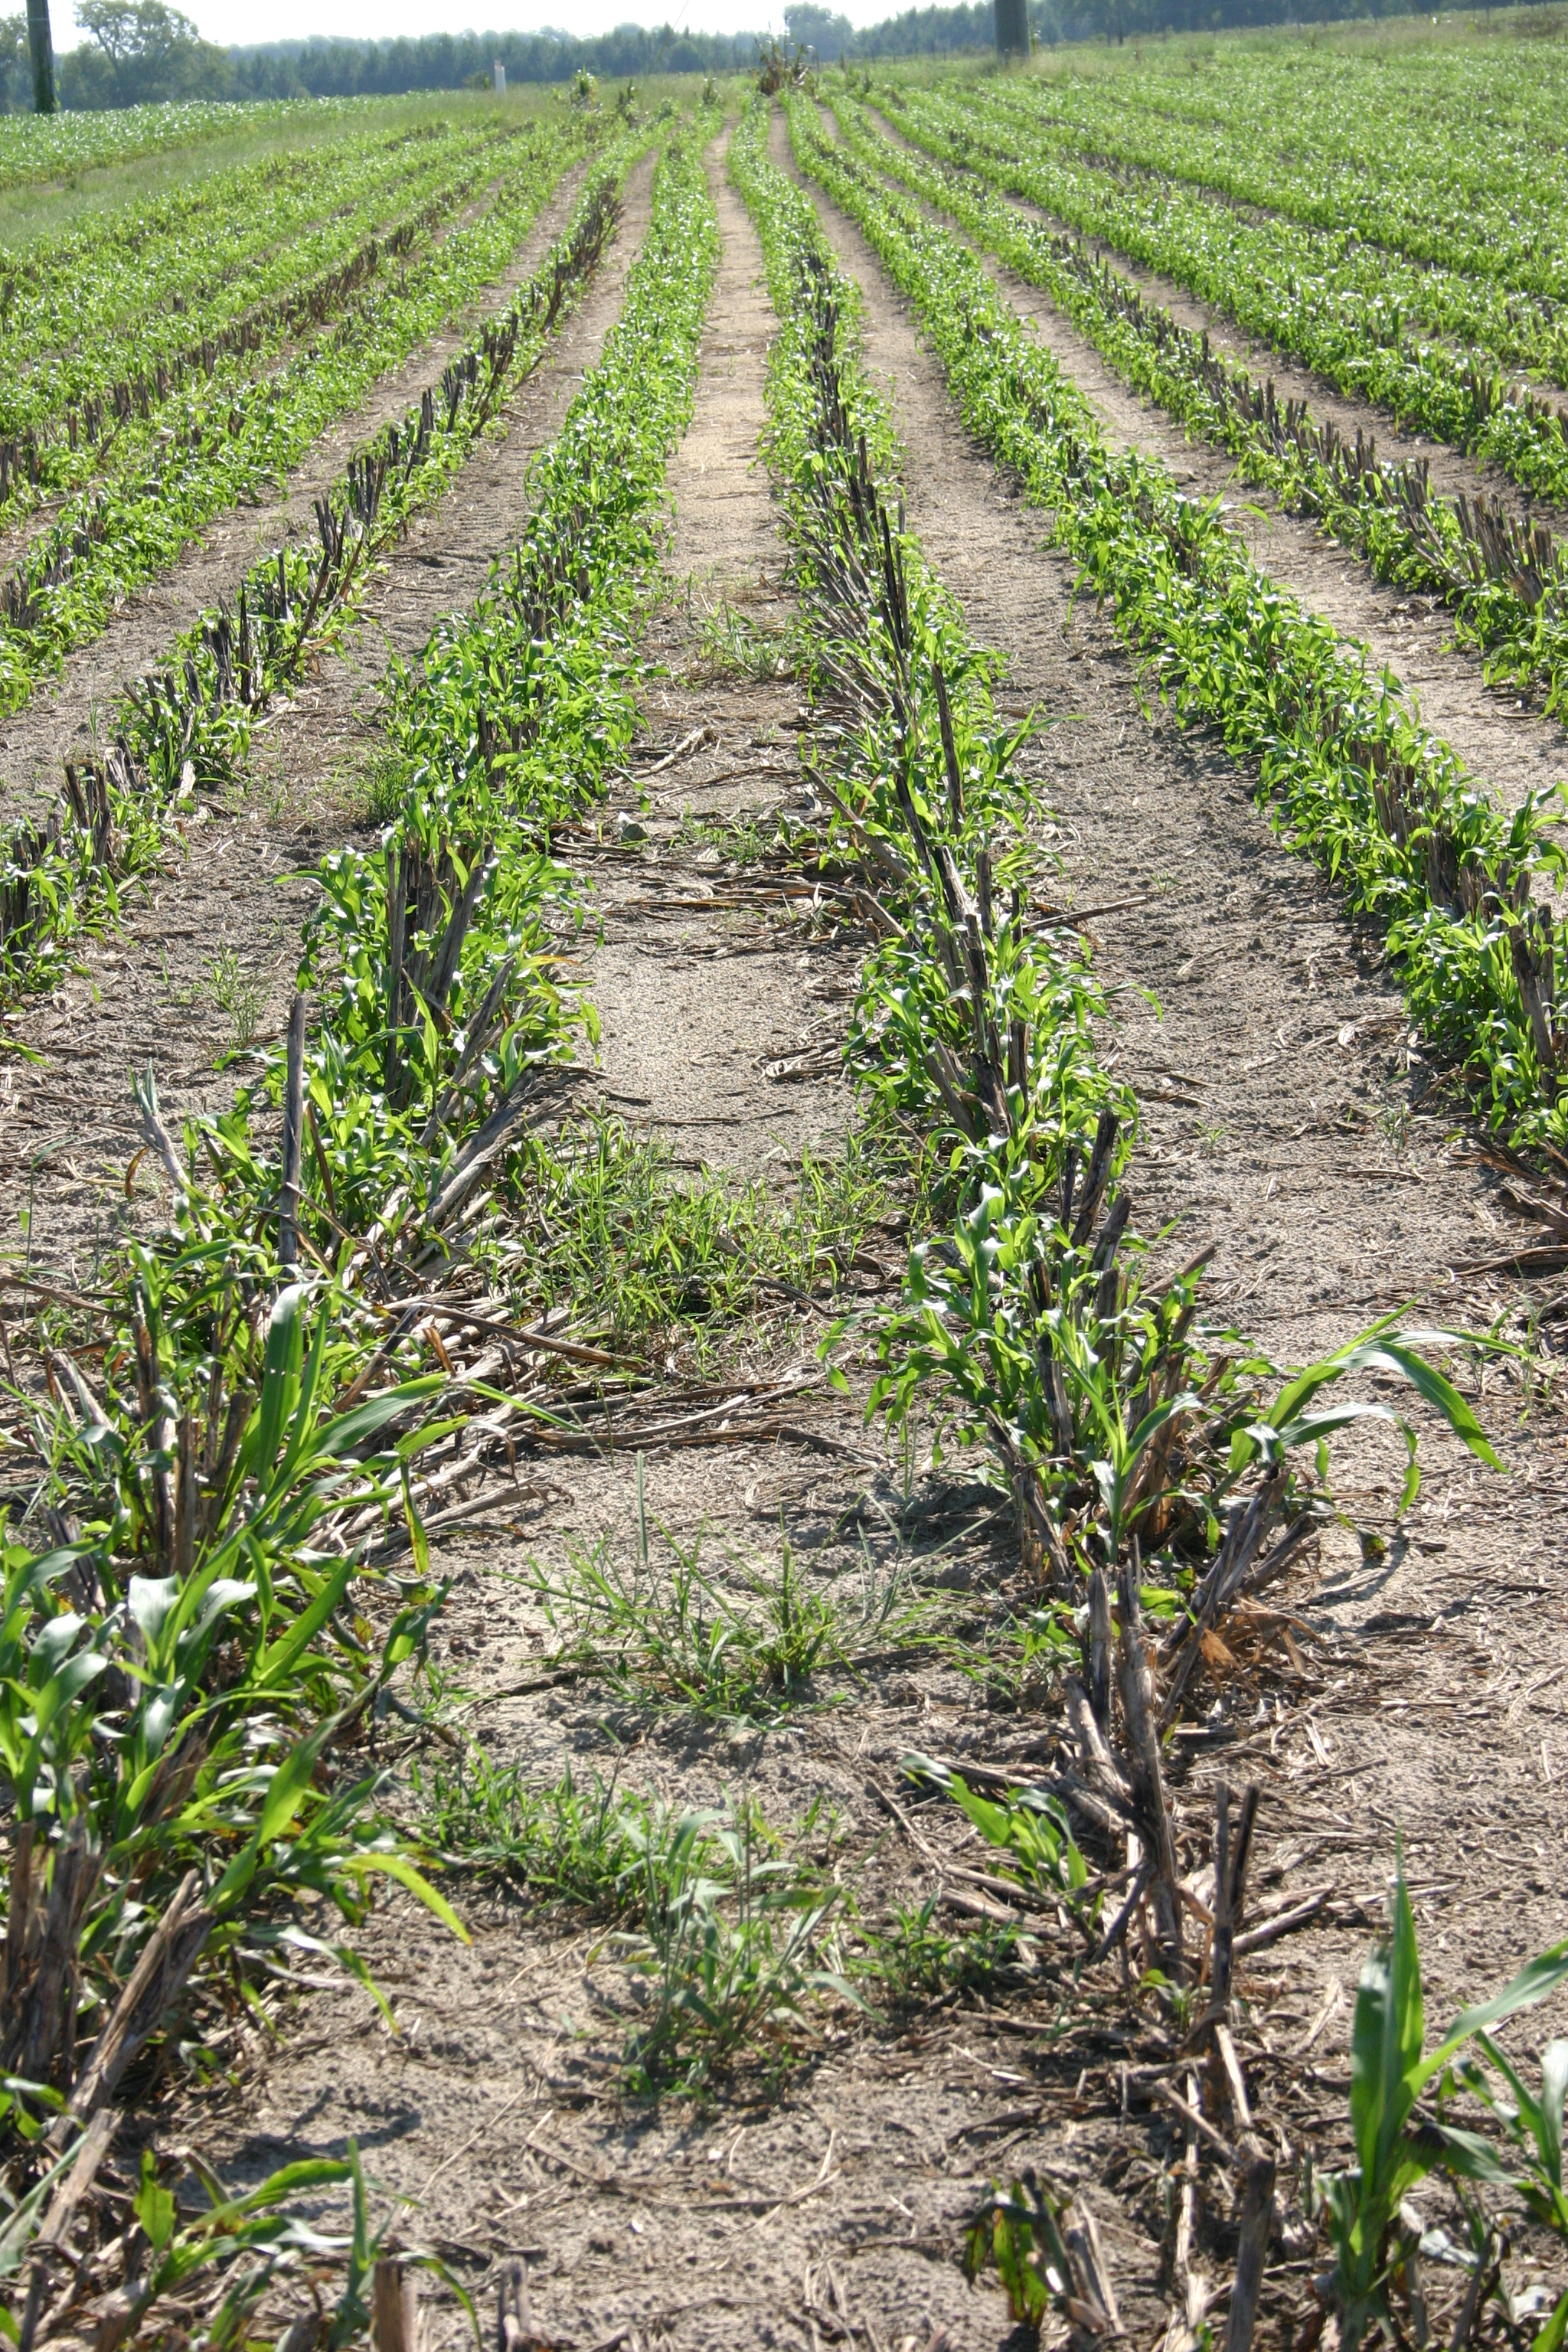 Rows of forage sorghum regrowth after the first cutting.